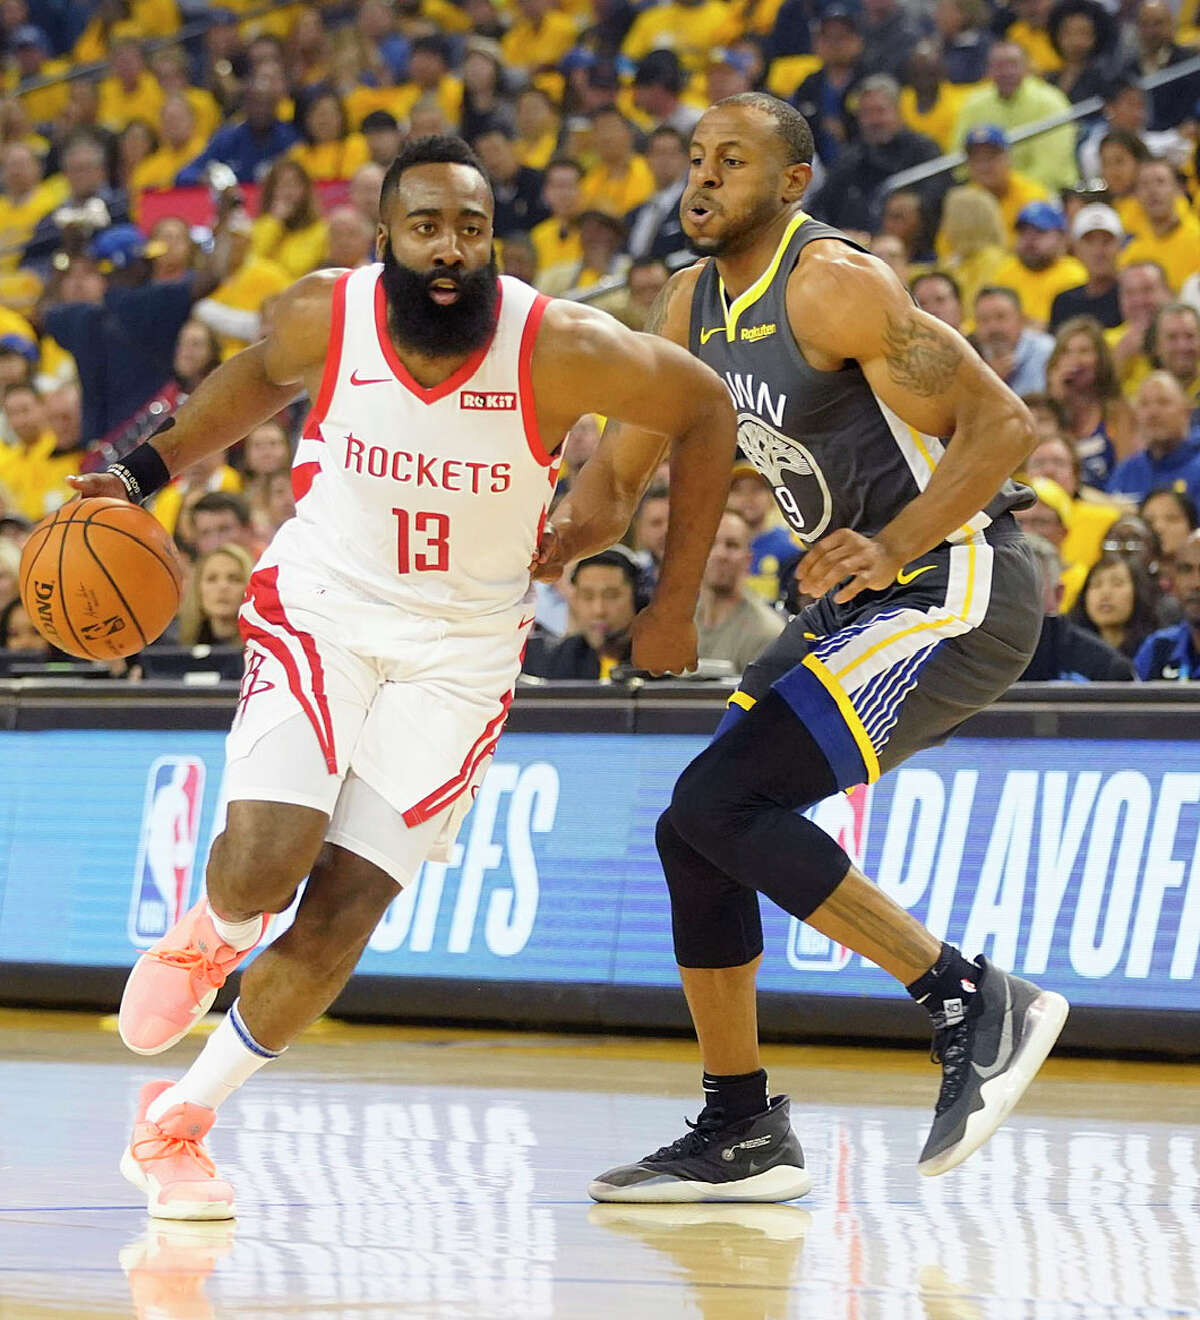 Houston Rockets guard James Harden (13) drives past Golden State Warriors guard Andre Iguodala (9) during the first half of an NBA playoff game at Oracle Center, Tuesday, April 30, 2019, in Oakland .